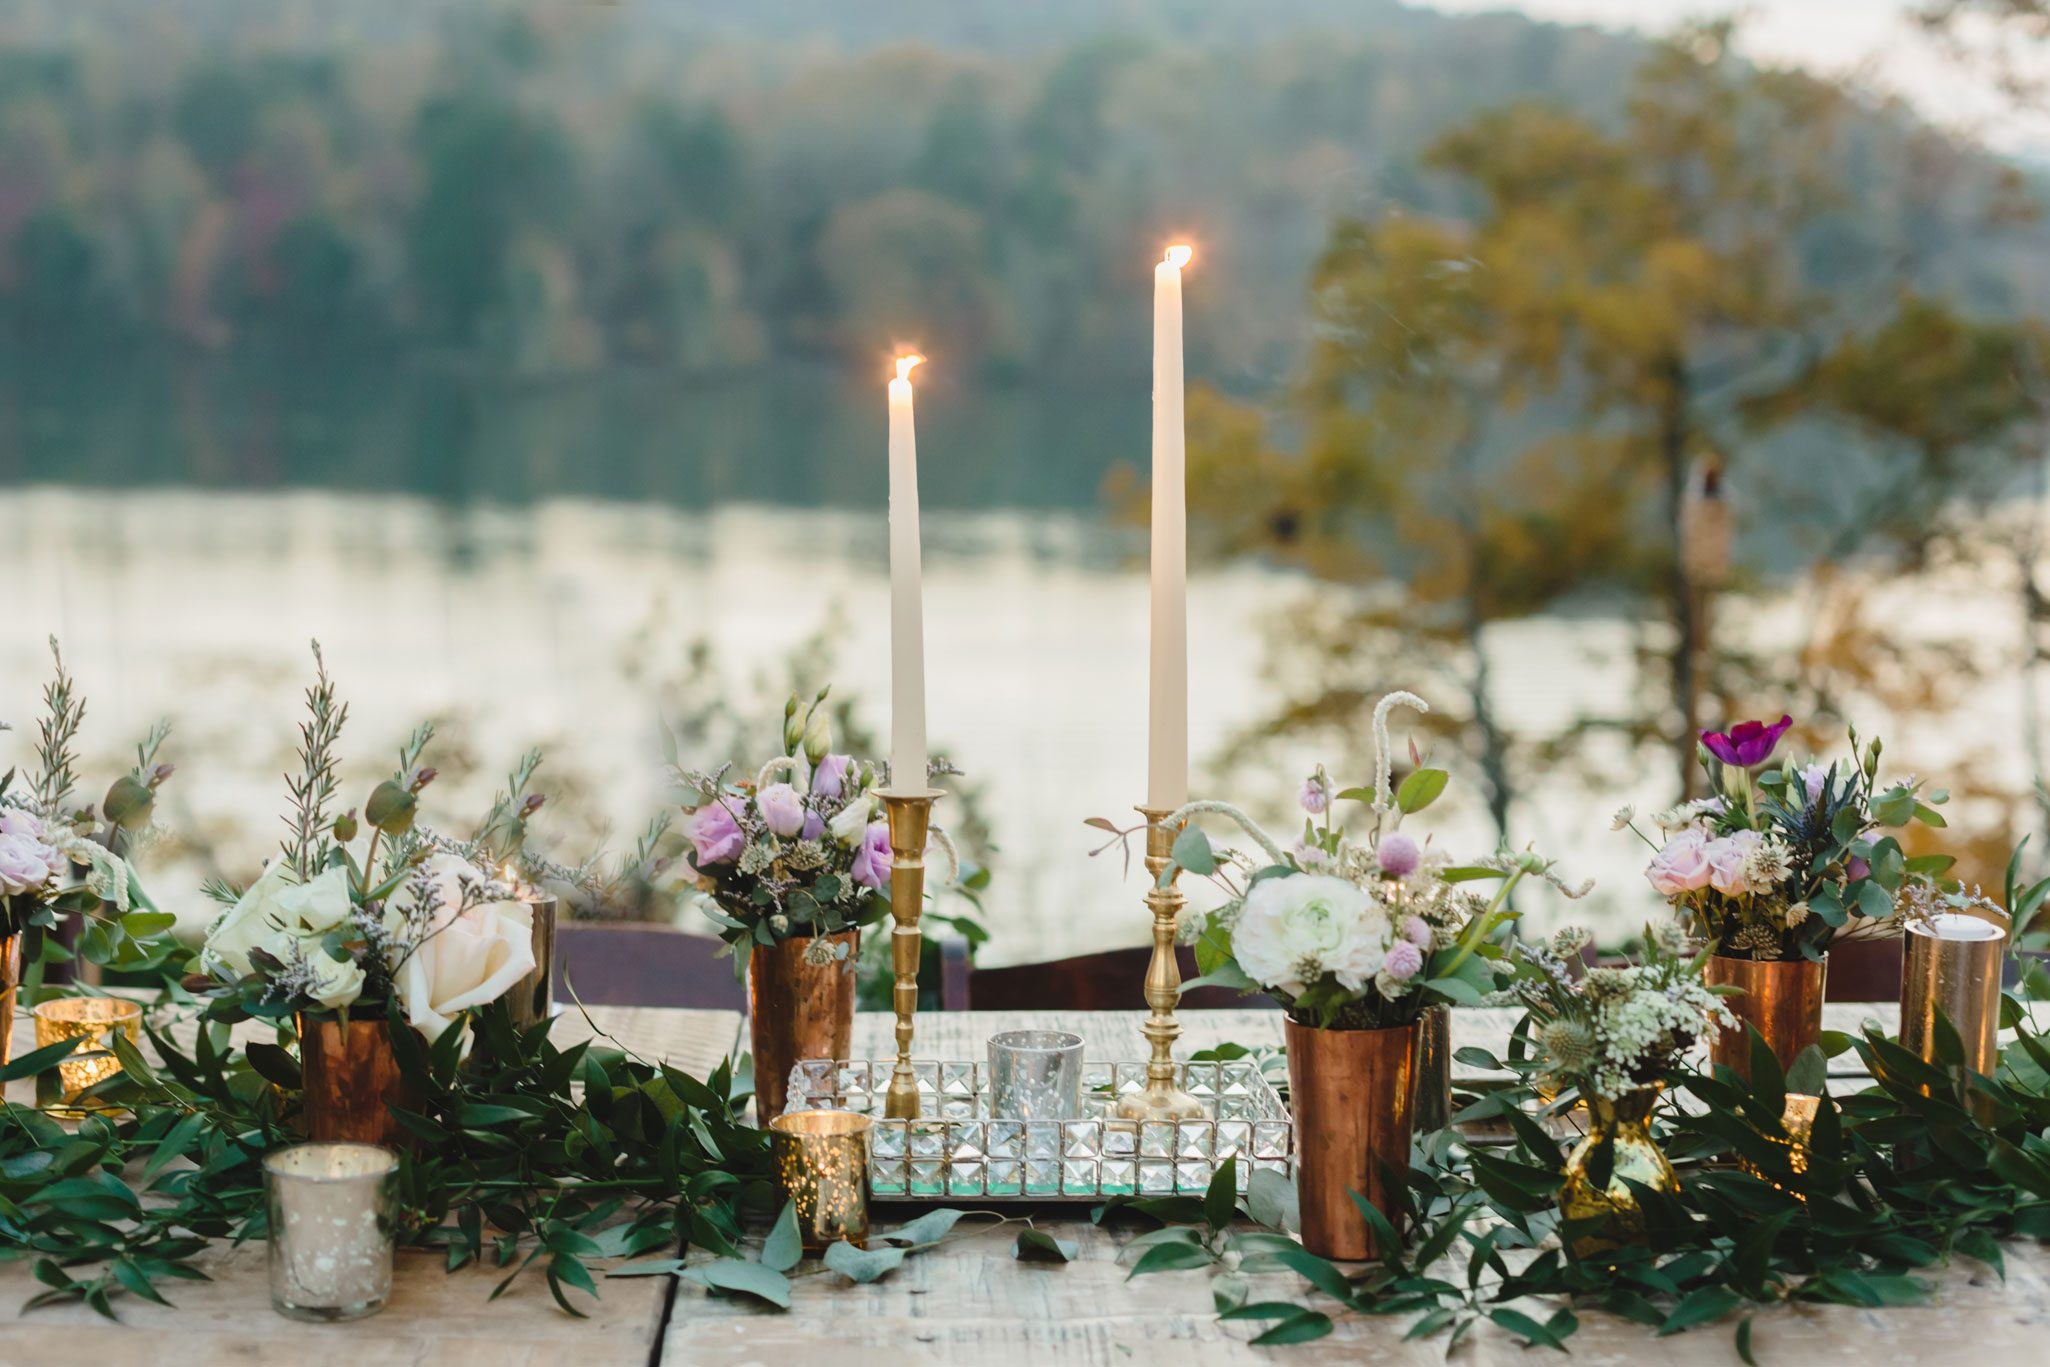 Fall Outdoor Table Setting | Autumn Tennessee Wedding in Knoxville, TN